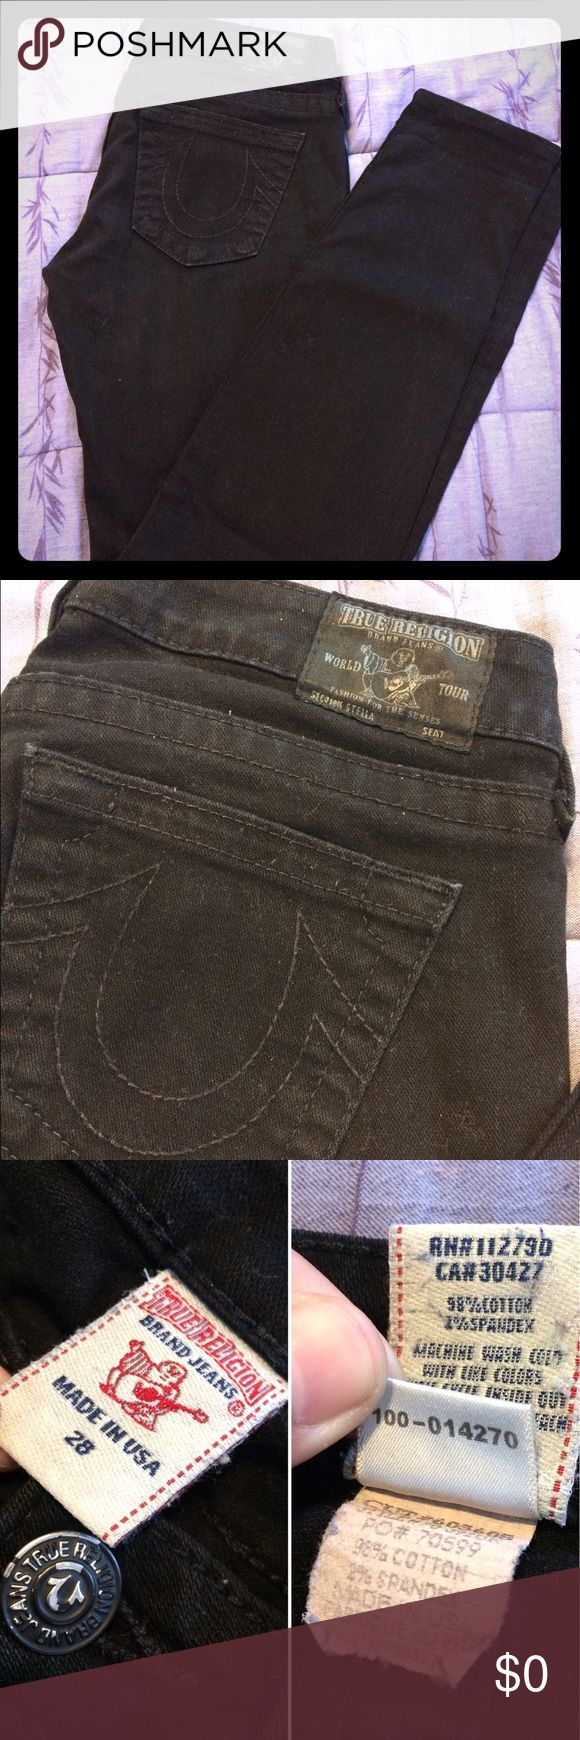 🔥😱SALE🔥 True Religion Blk Stella Skinny Jeans Authentic True Religion Brand Jeans 👖 In great condition! 💕 Just lint rolled and washed! 🛁 Says Section Stella on the back patch 😊 Great stretch and comfort. Please feel free to ask any questions 😘✨💋 True Religion Jeans Skinny